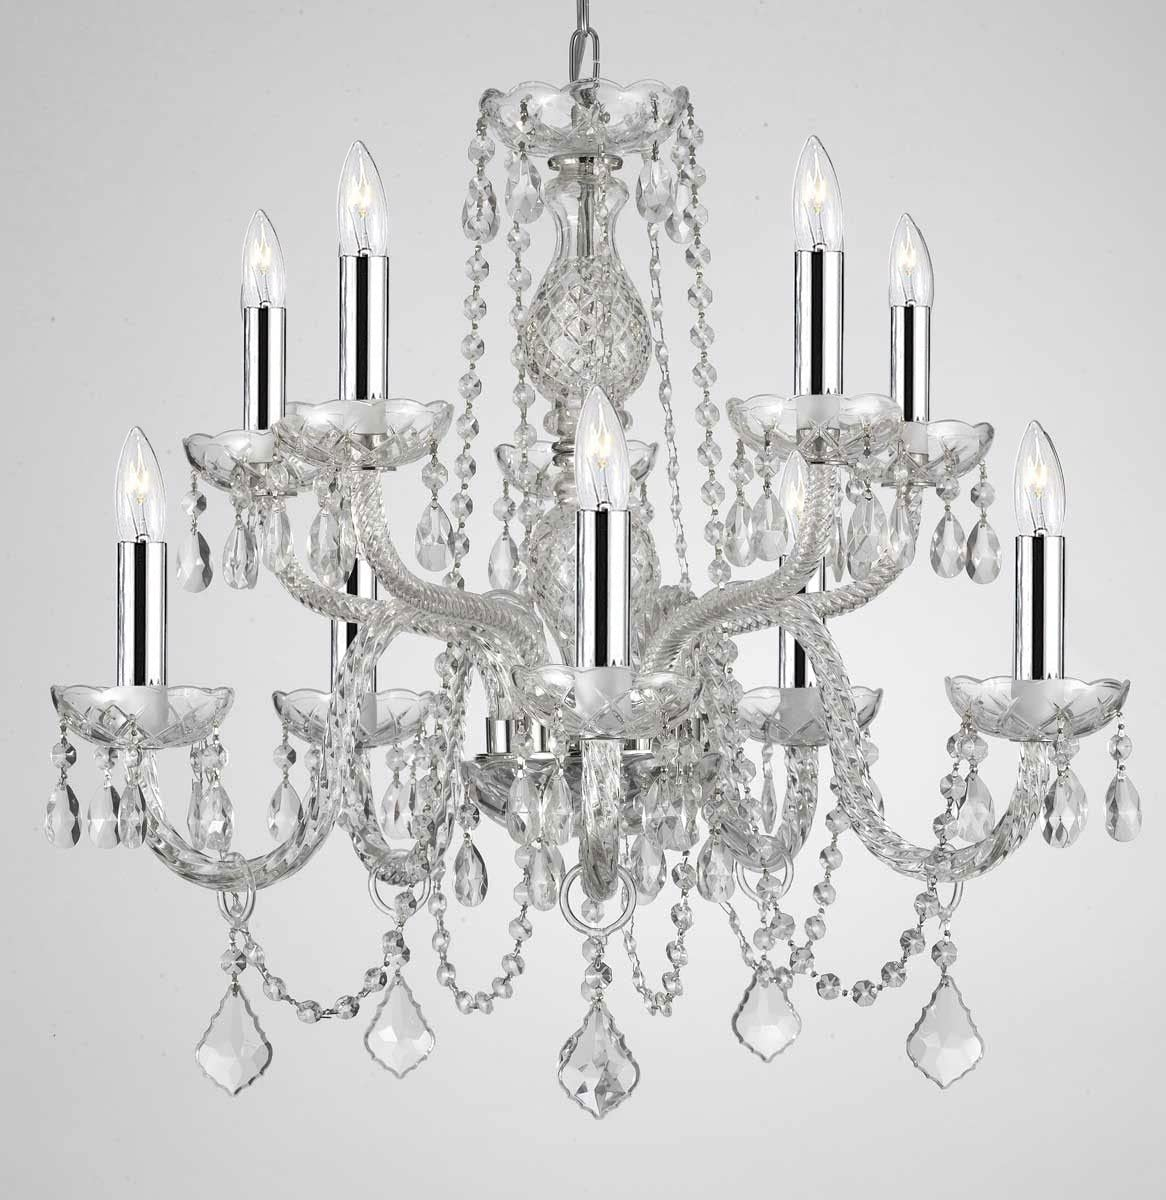 Empress Crystal tm Chandelier Lighting Crystal Chandeliers With Chrome Sleeves H25 X W24 10 LIGHTS